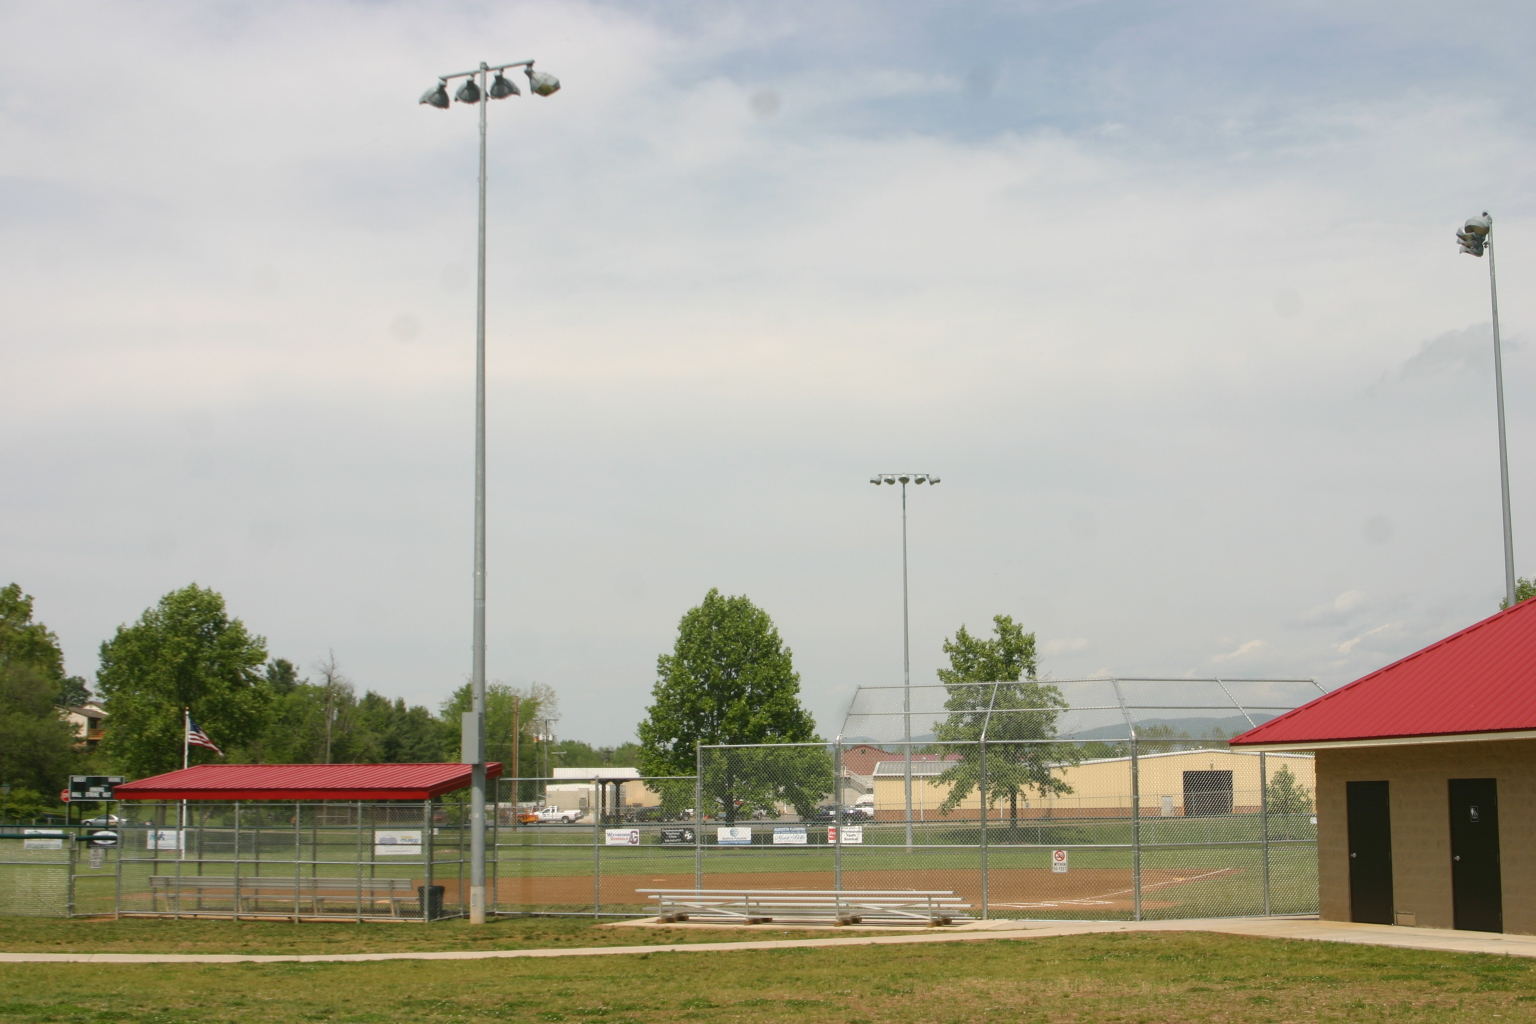 North Park Ball Field